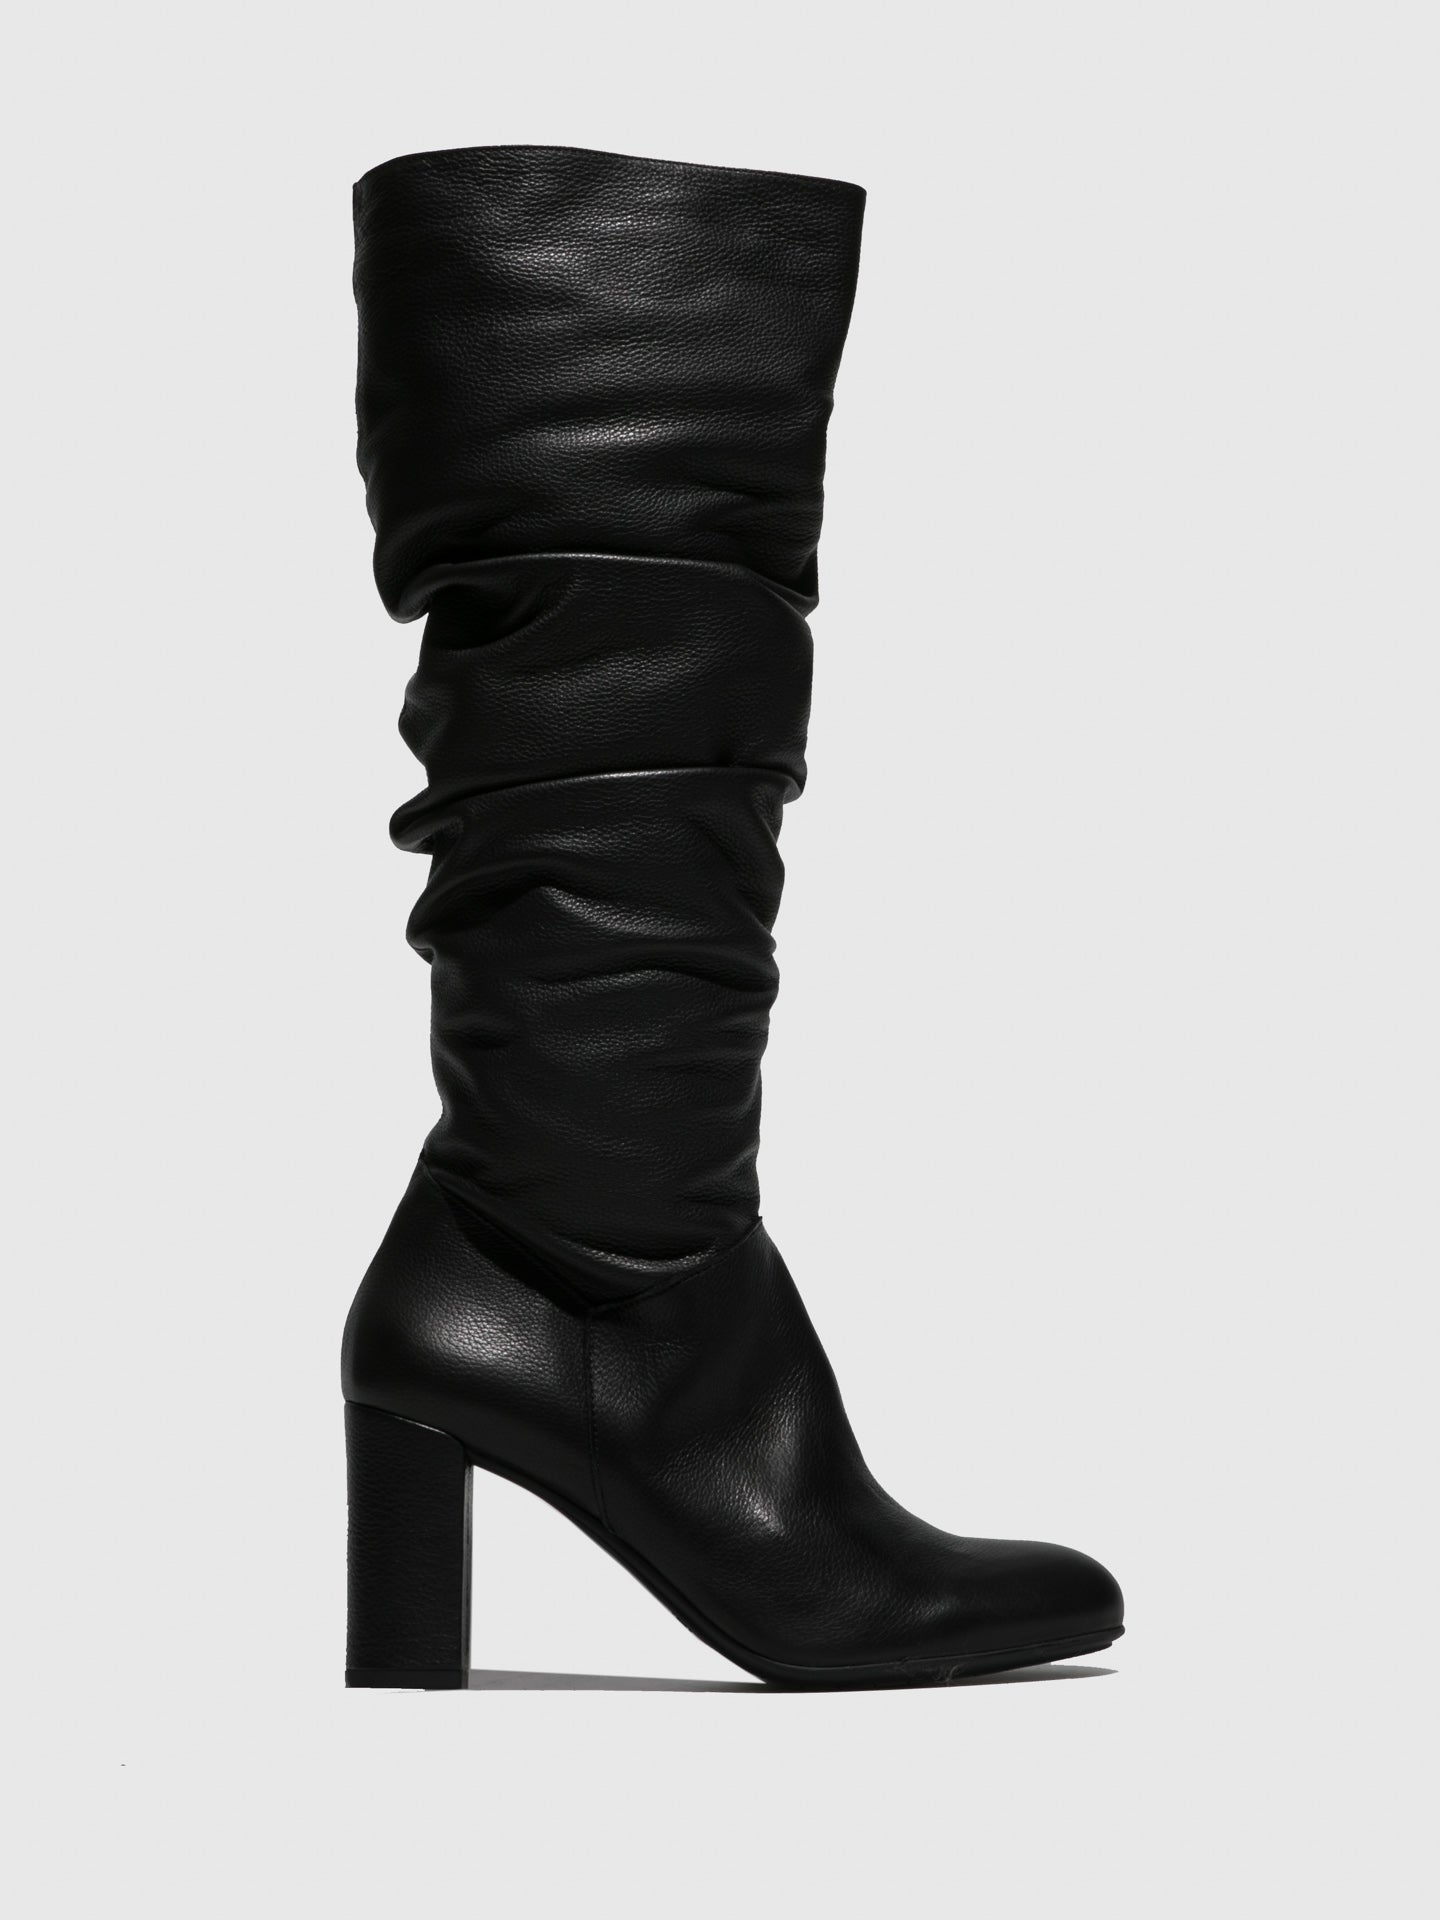 Perlato Black Zip Up Boots